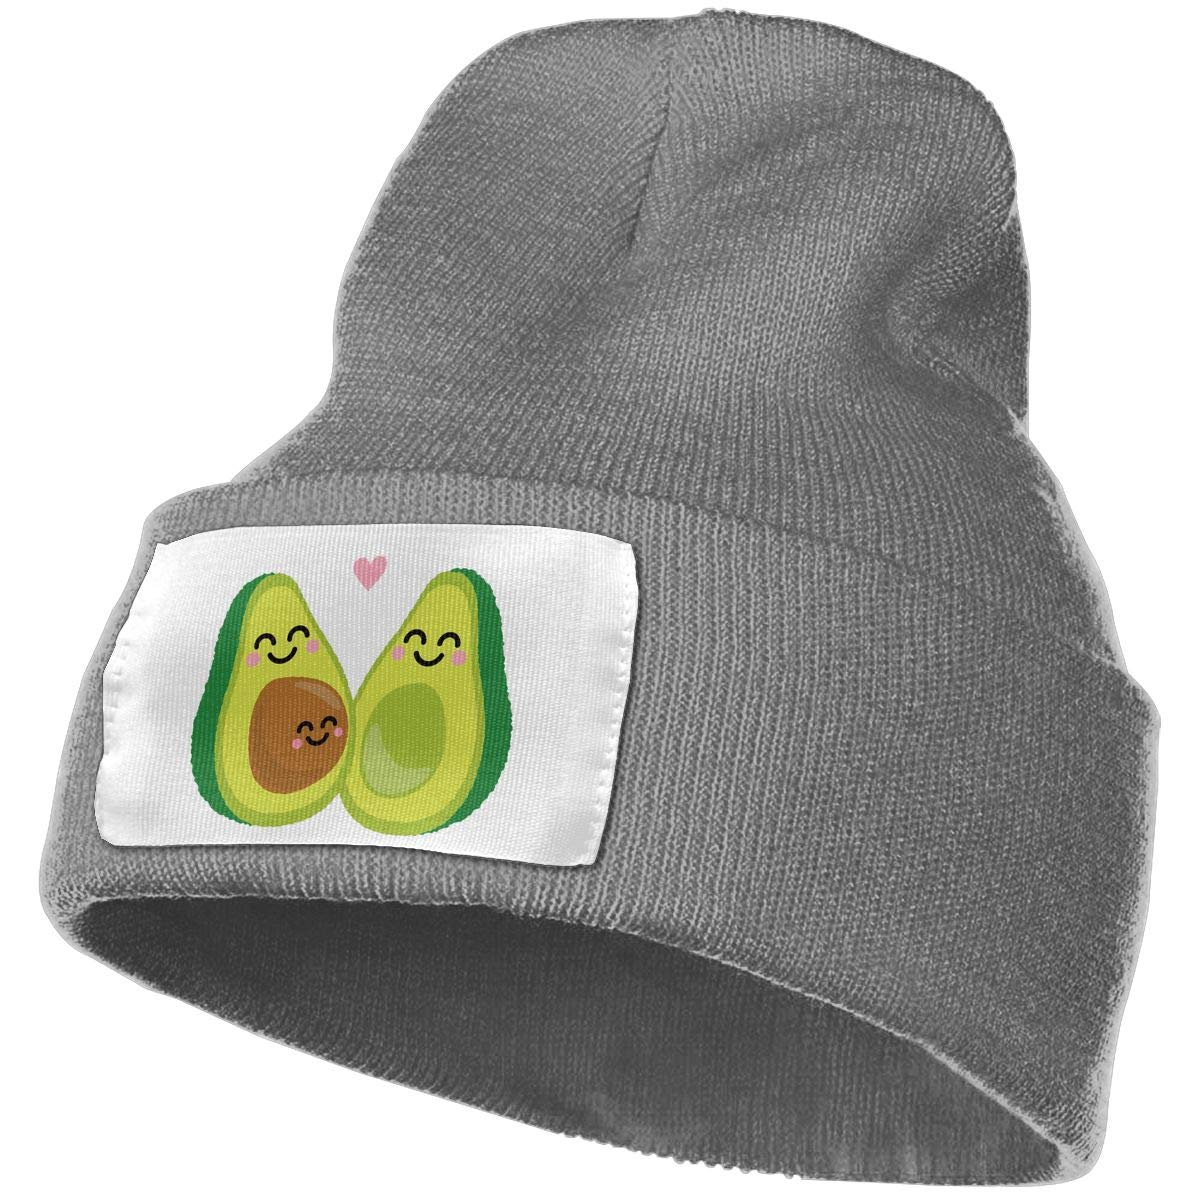 Baby Avocado Avocado Family Unisex Knitted Hat Casual Knitting Beanies Caps Black